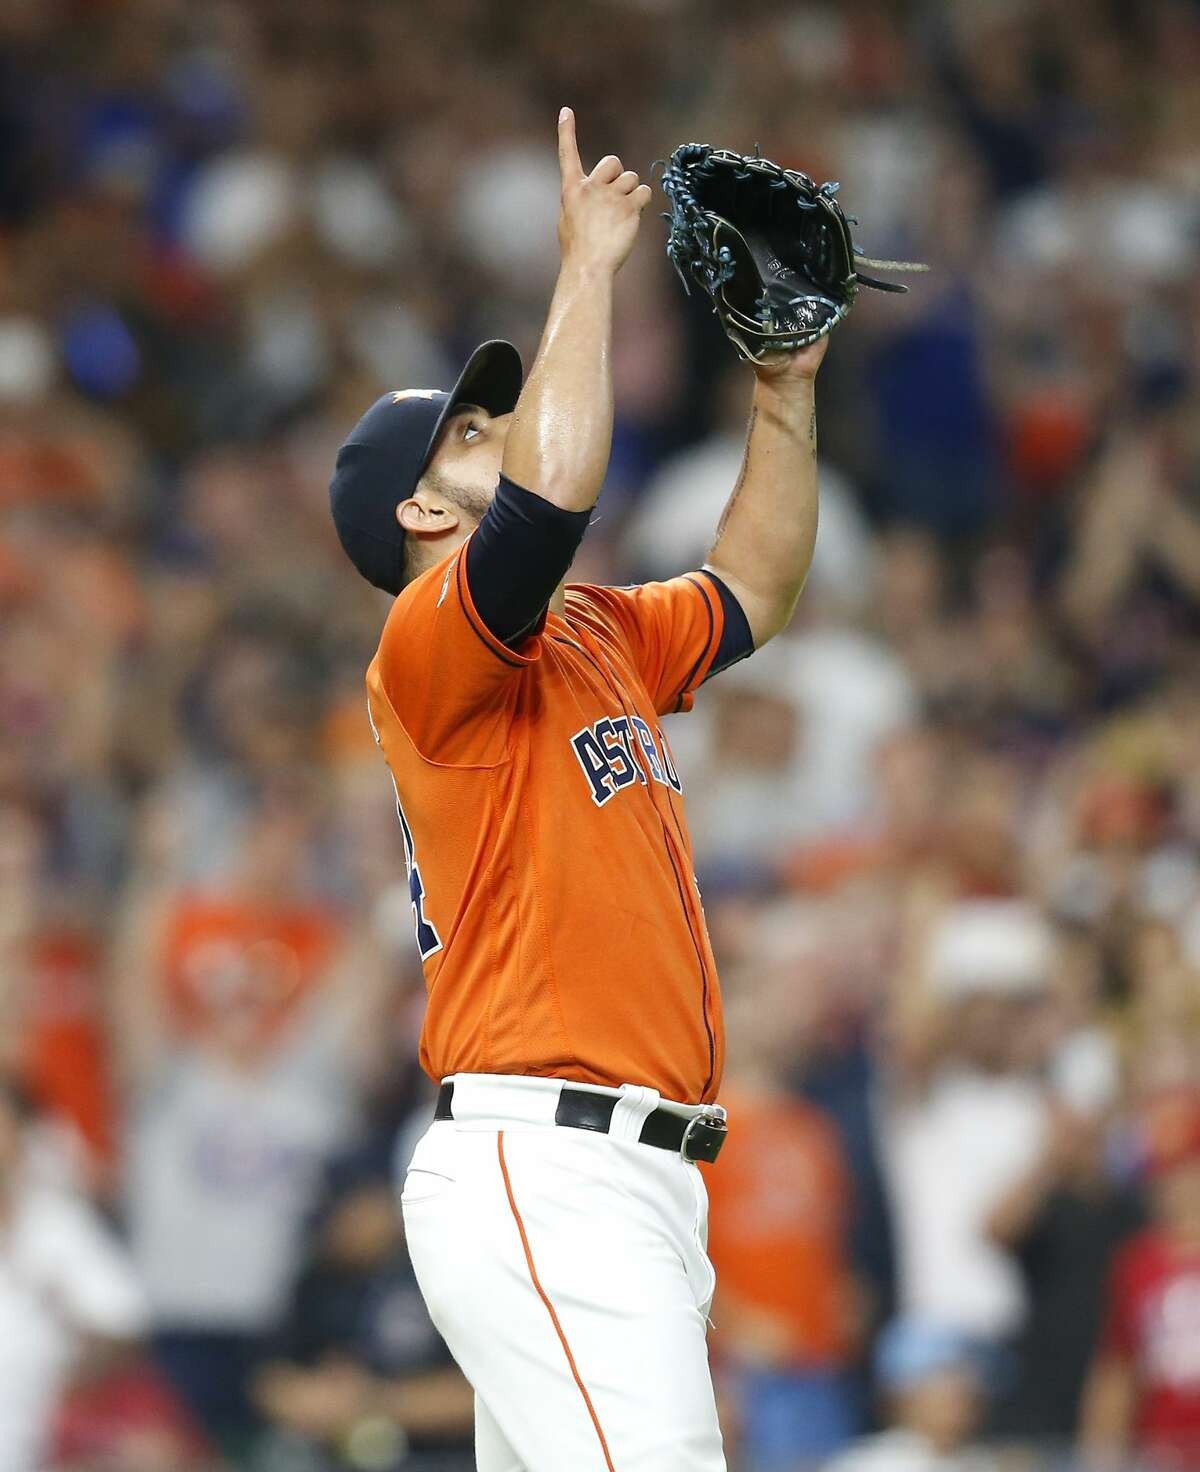 Houston Astros relief pitcher Roberto Osuna (54) reacts to the final out in the ninth inning for the Texas Rangers at Minute Maid Park on Friday, July 19, 2019 in Houston. Houston Astros won the game 4-3.